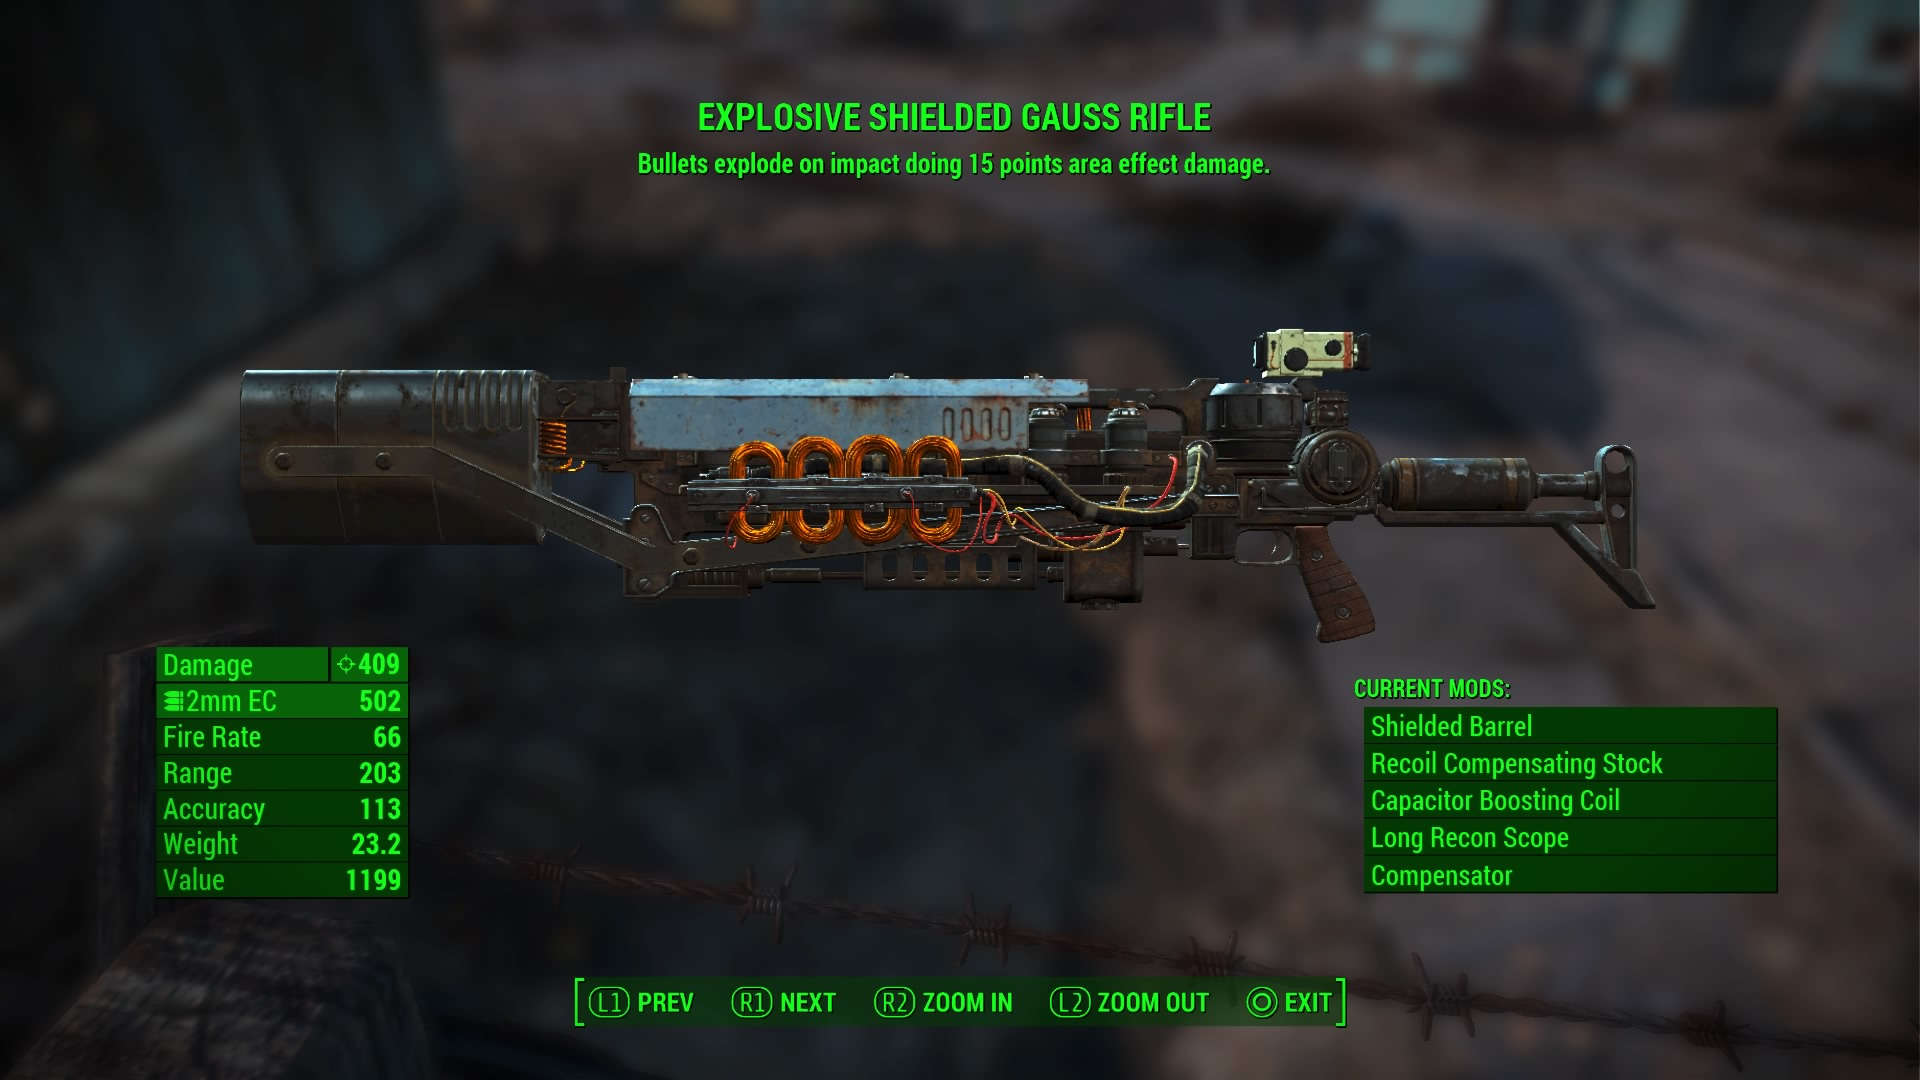 My gauss rifle now does 409 damage, plus a bit of  explosive AOF. That's over 1700 damage on a sneak attack.